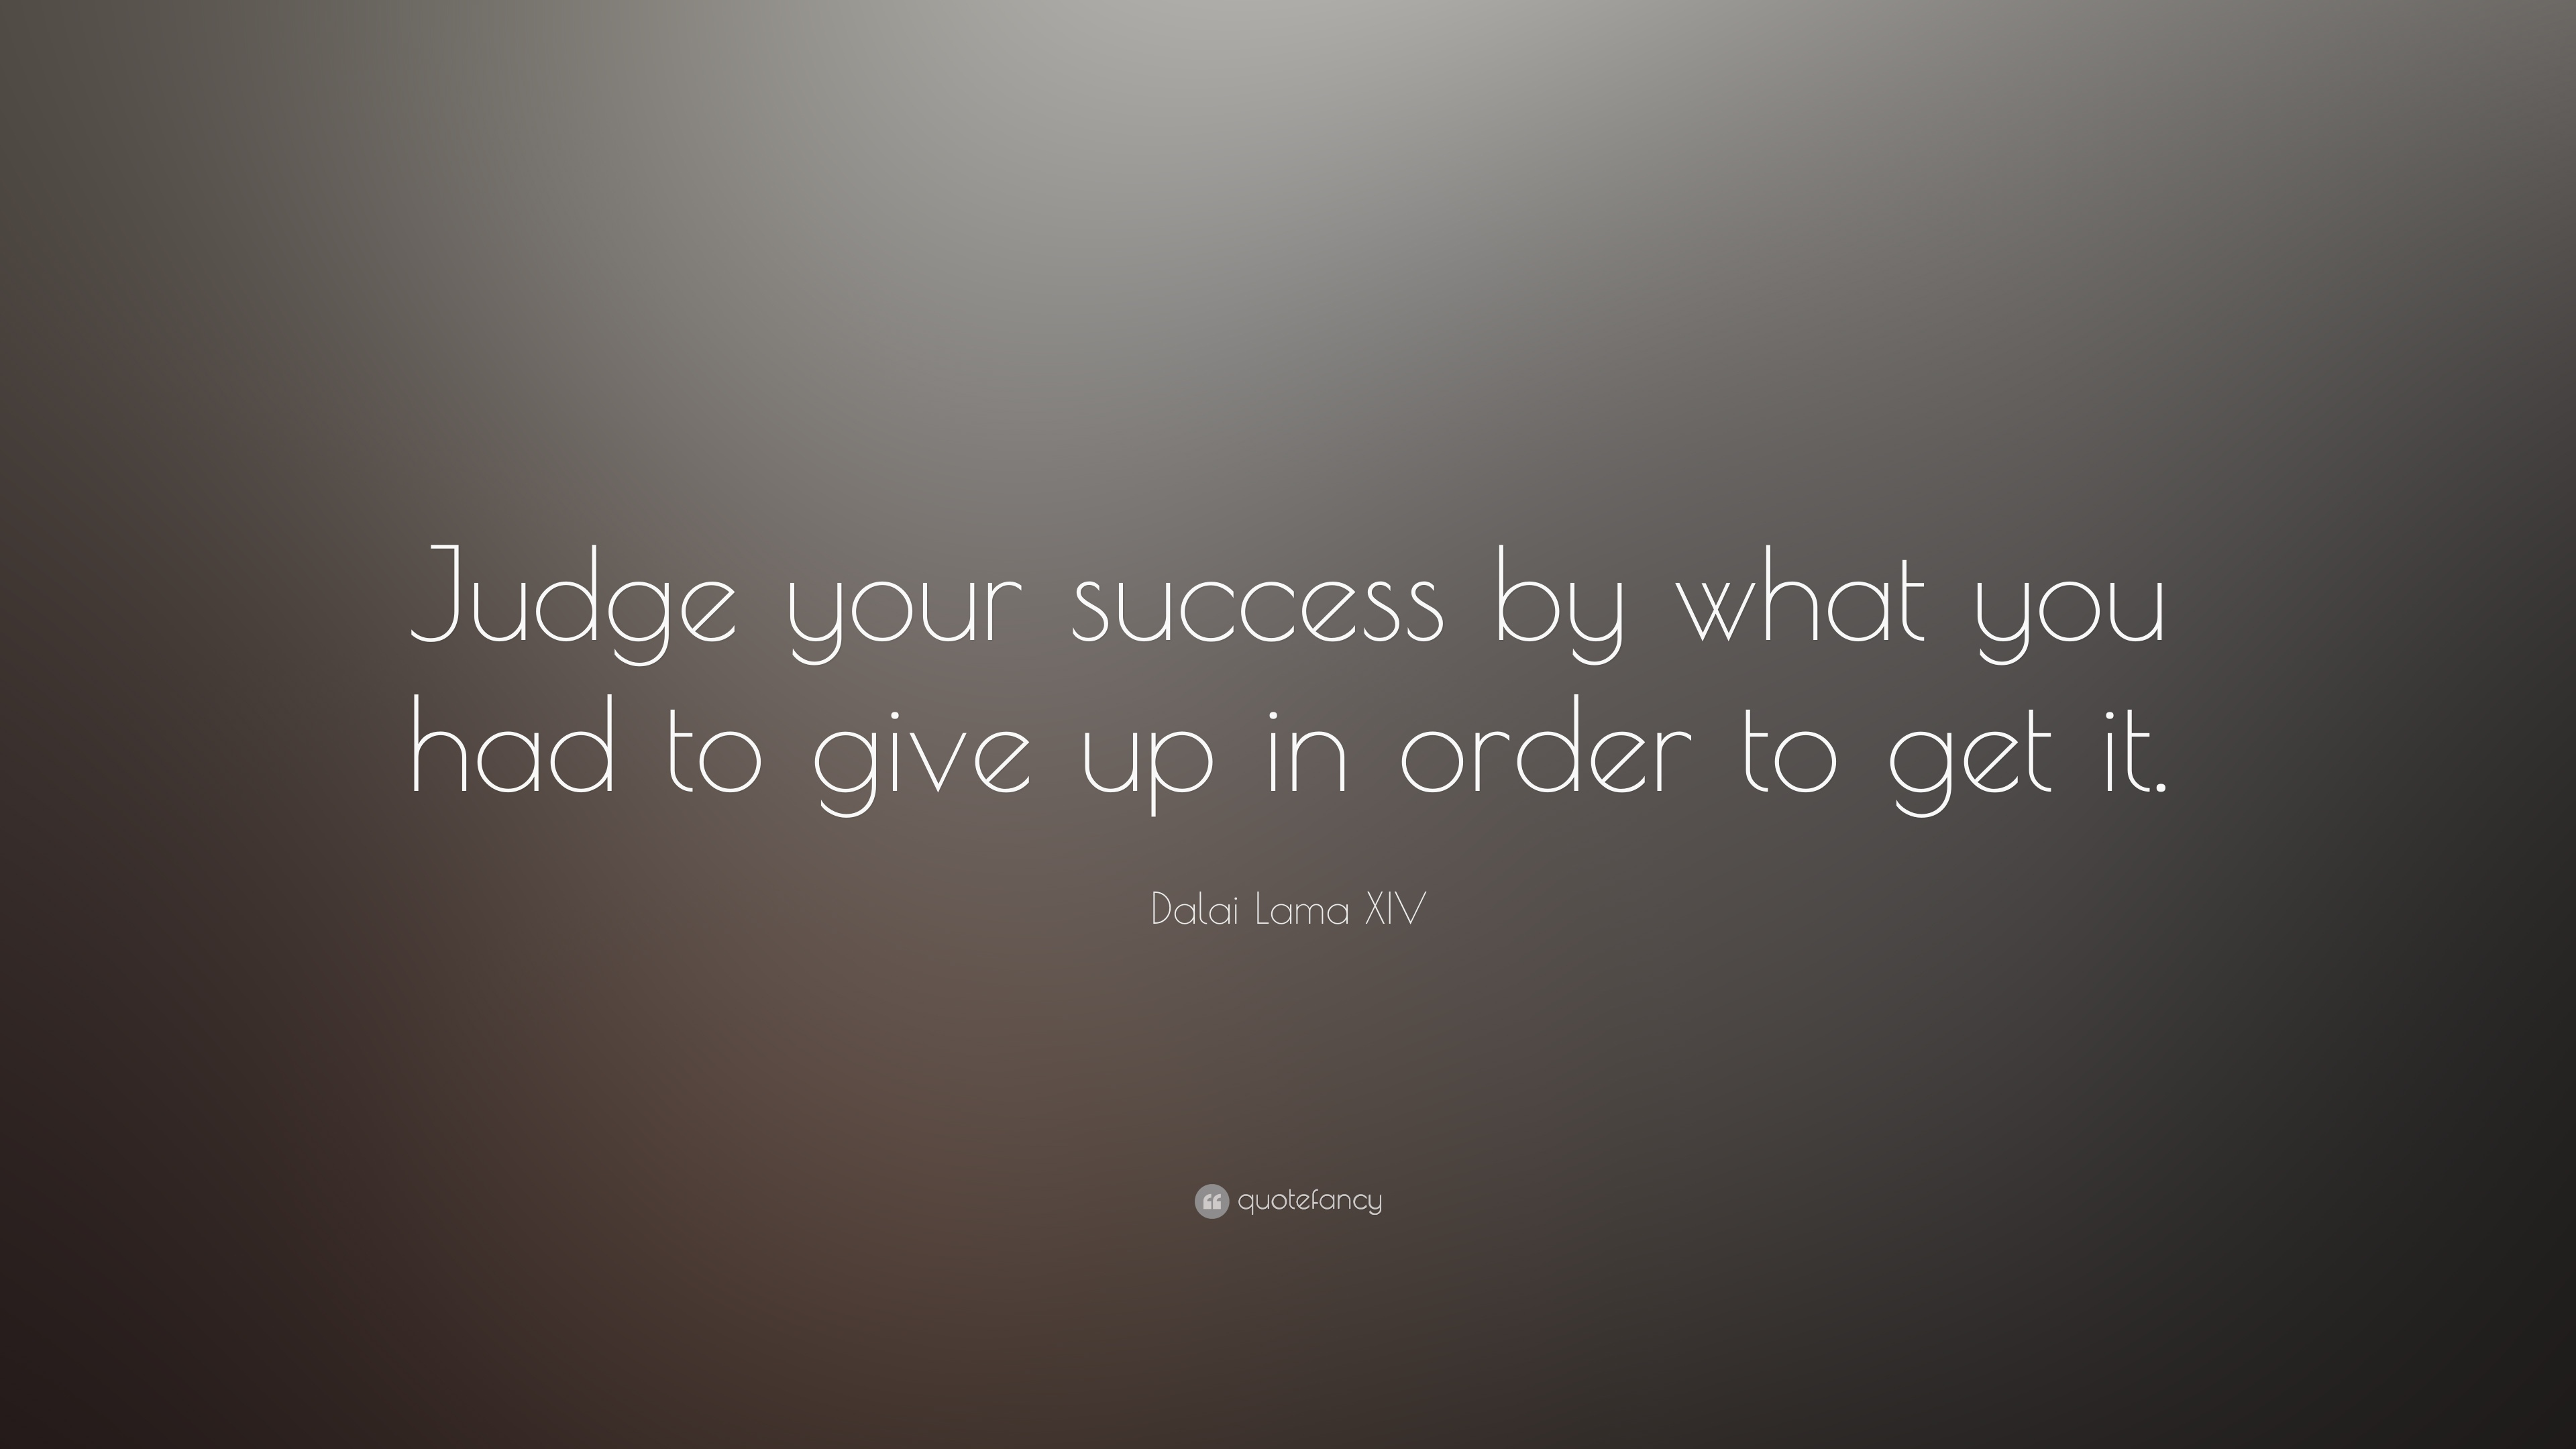 Dalai Lama Xiv Quote Judge Your Success By What You Had To Give Up